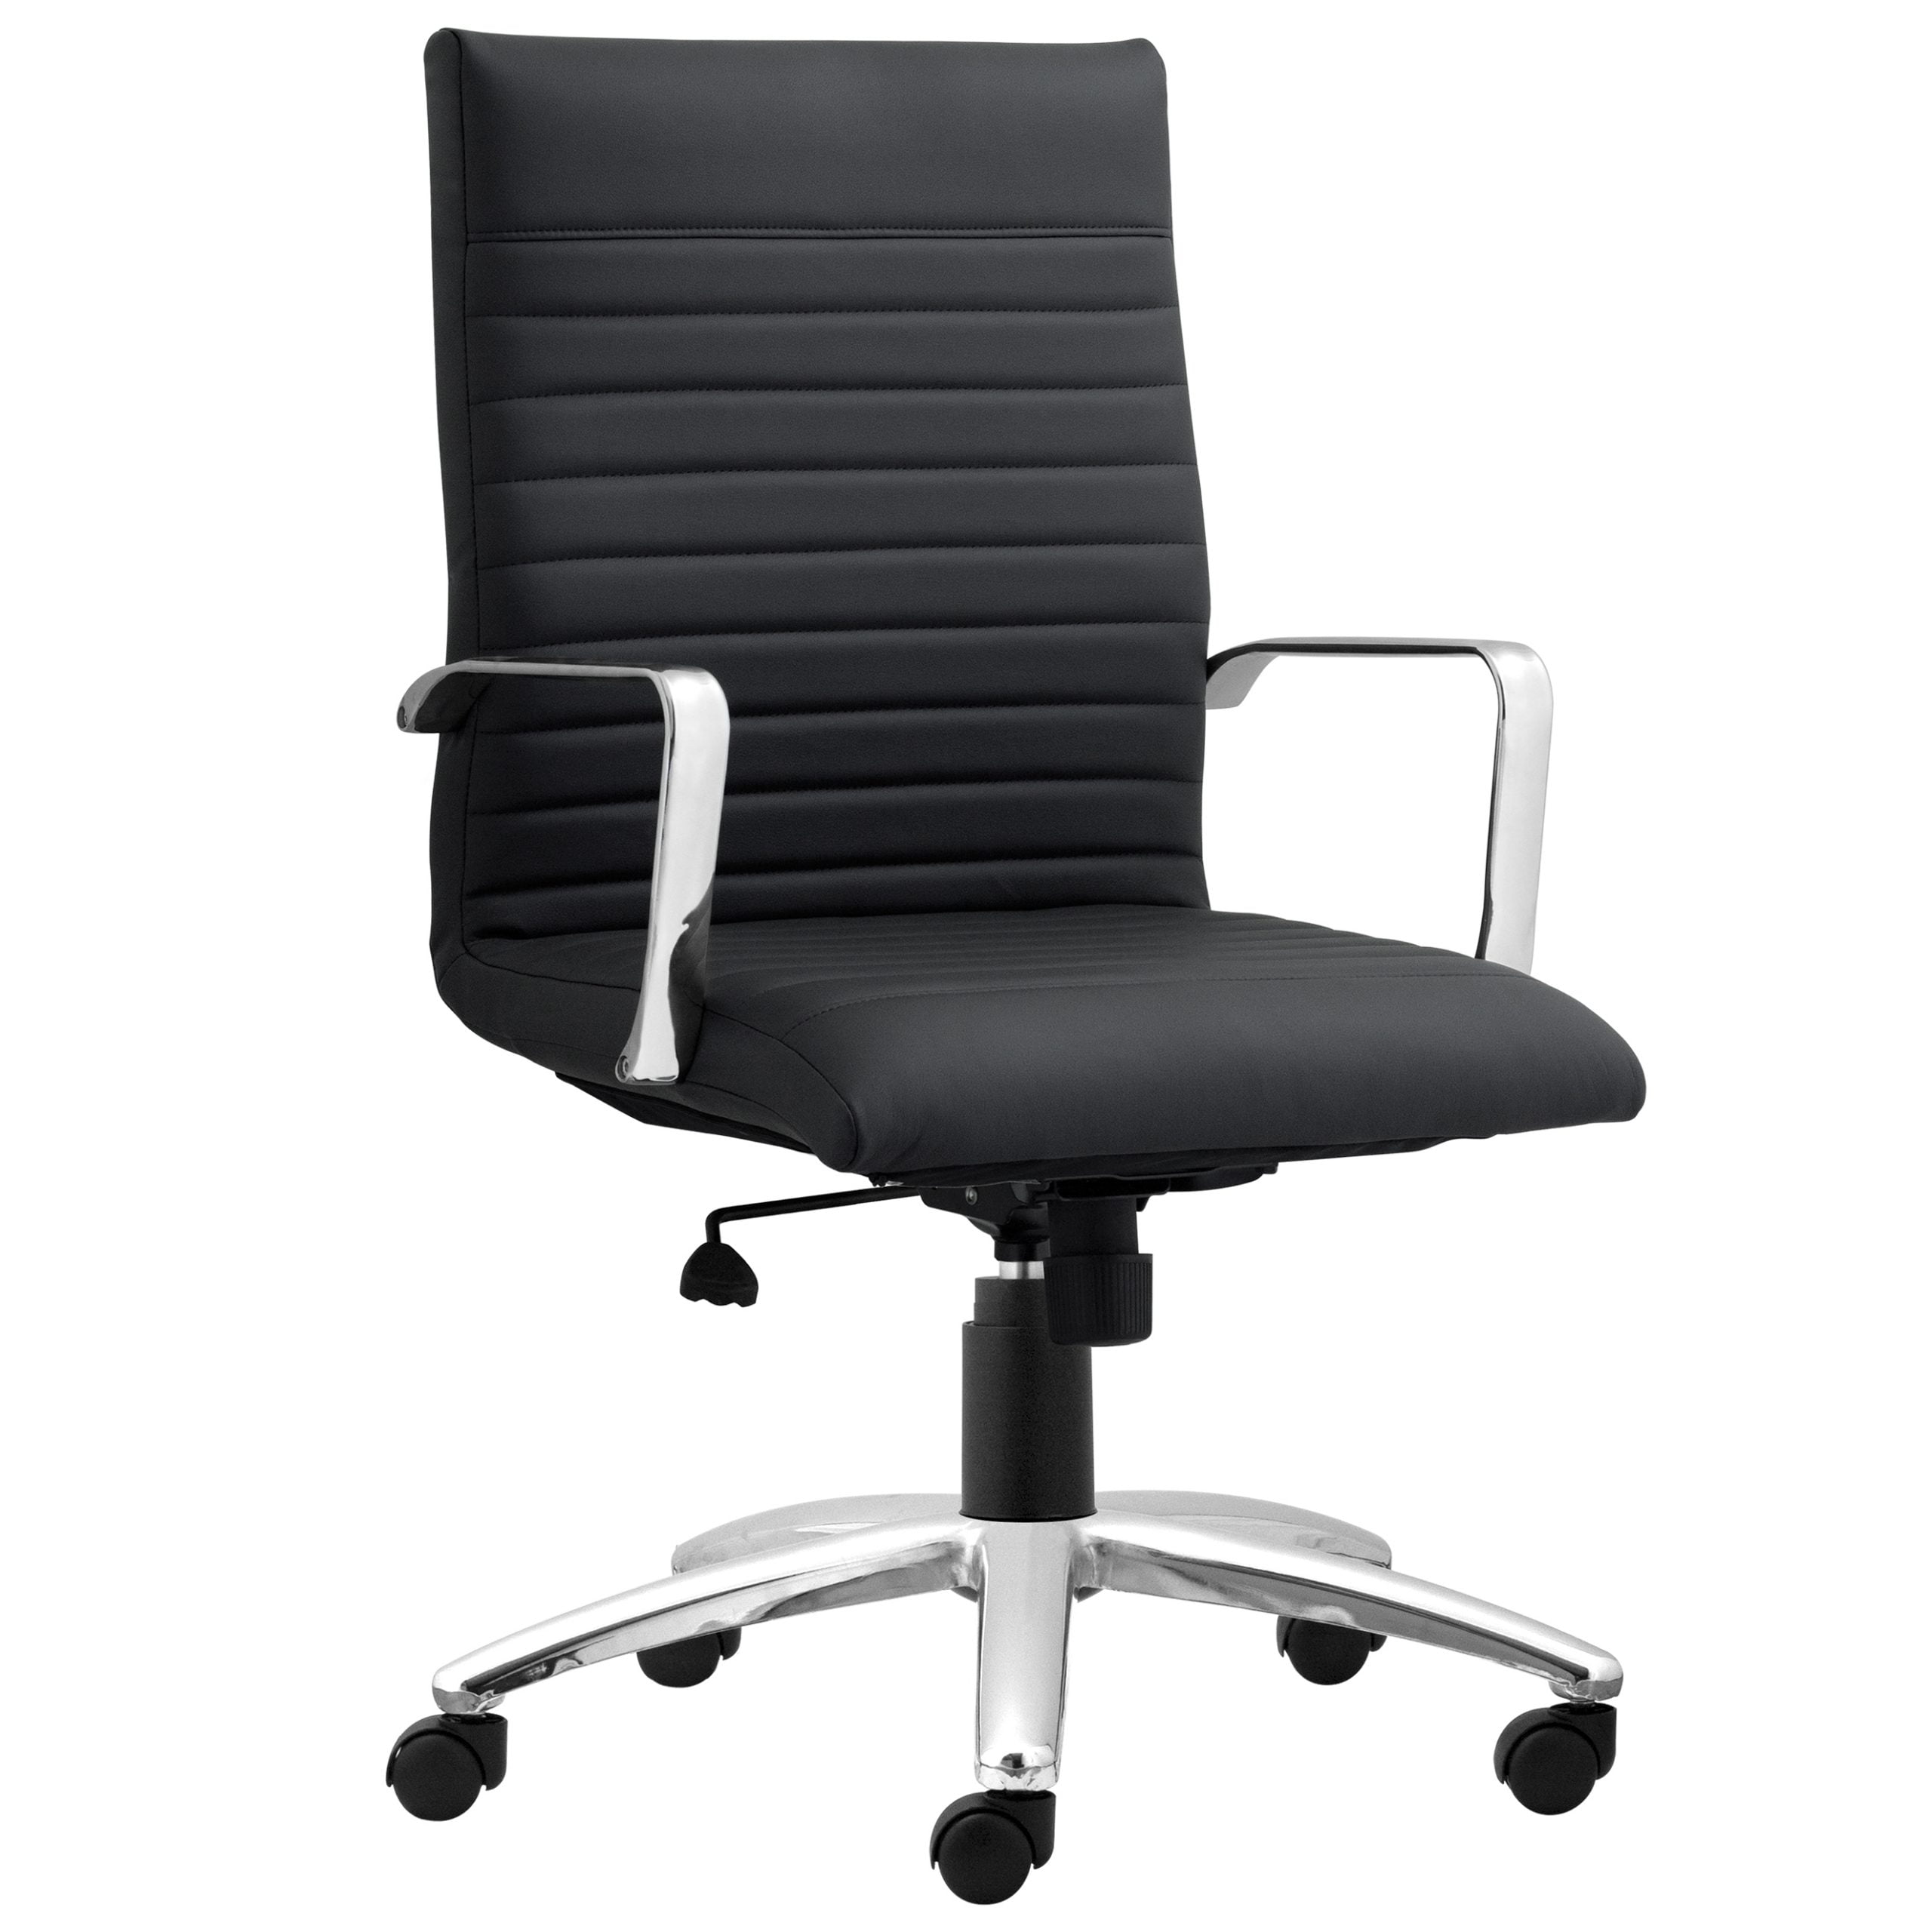 Modena Task Chair - Black